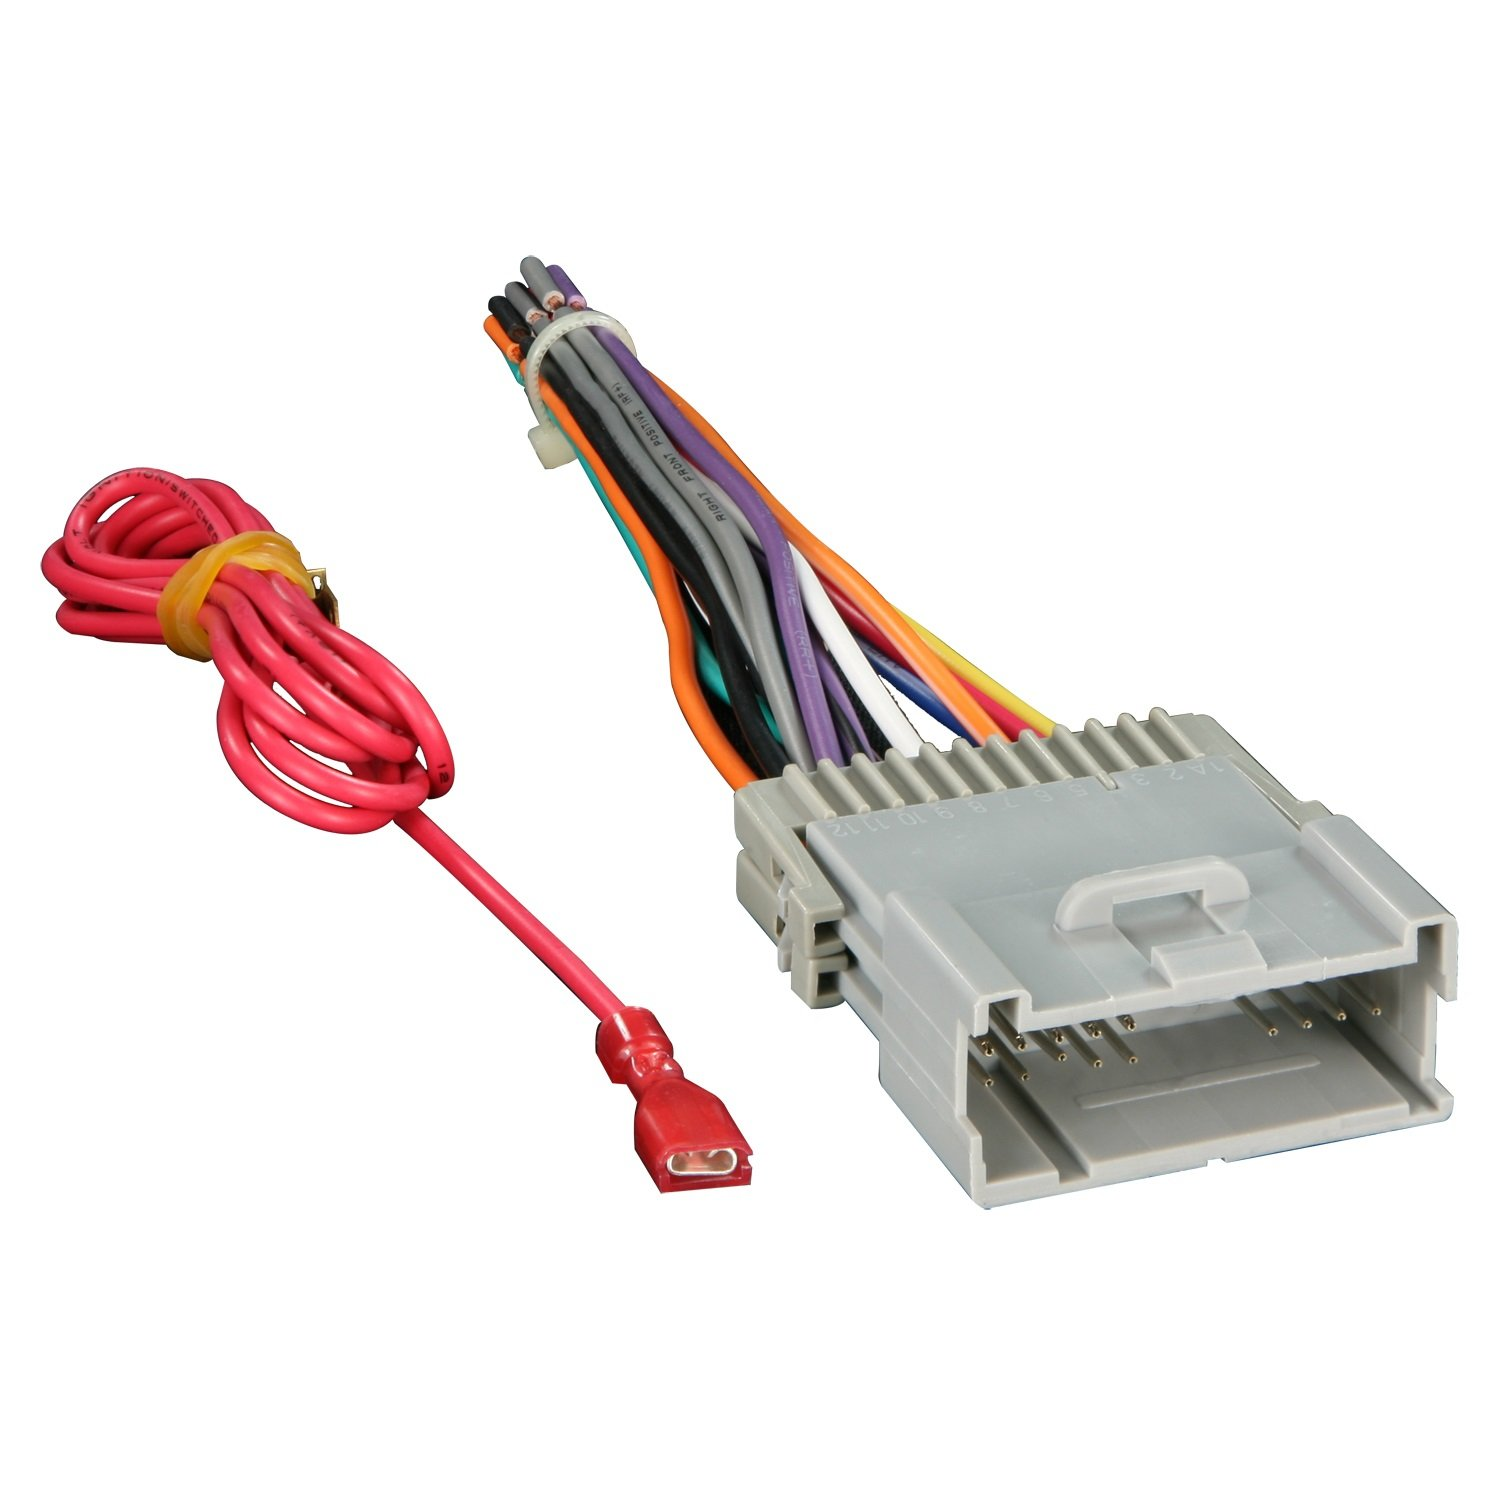 61eewxp9orL._SL1500_ amazon com metra 70 2003 radio wiring harness for gm 98 08 how to install wire harness car stereo at bayanpartner.co